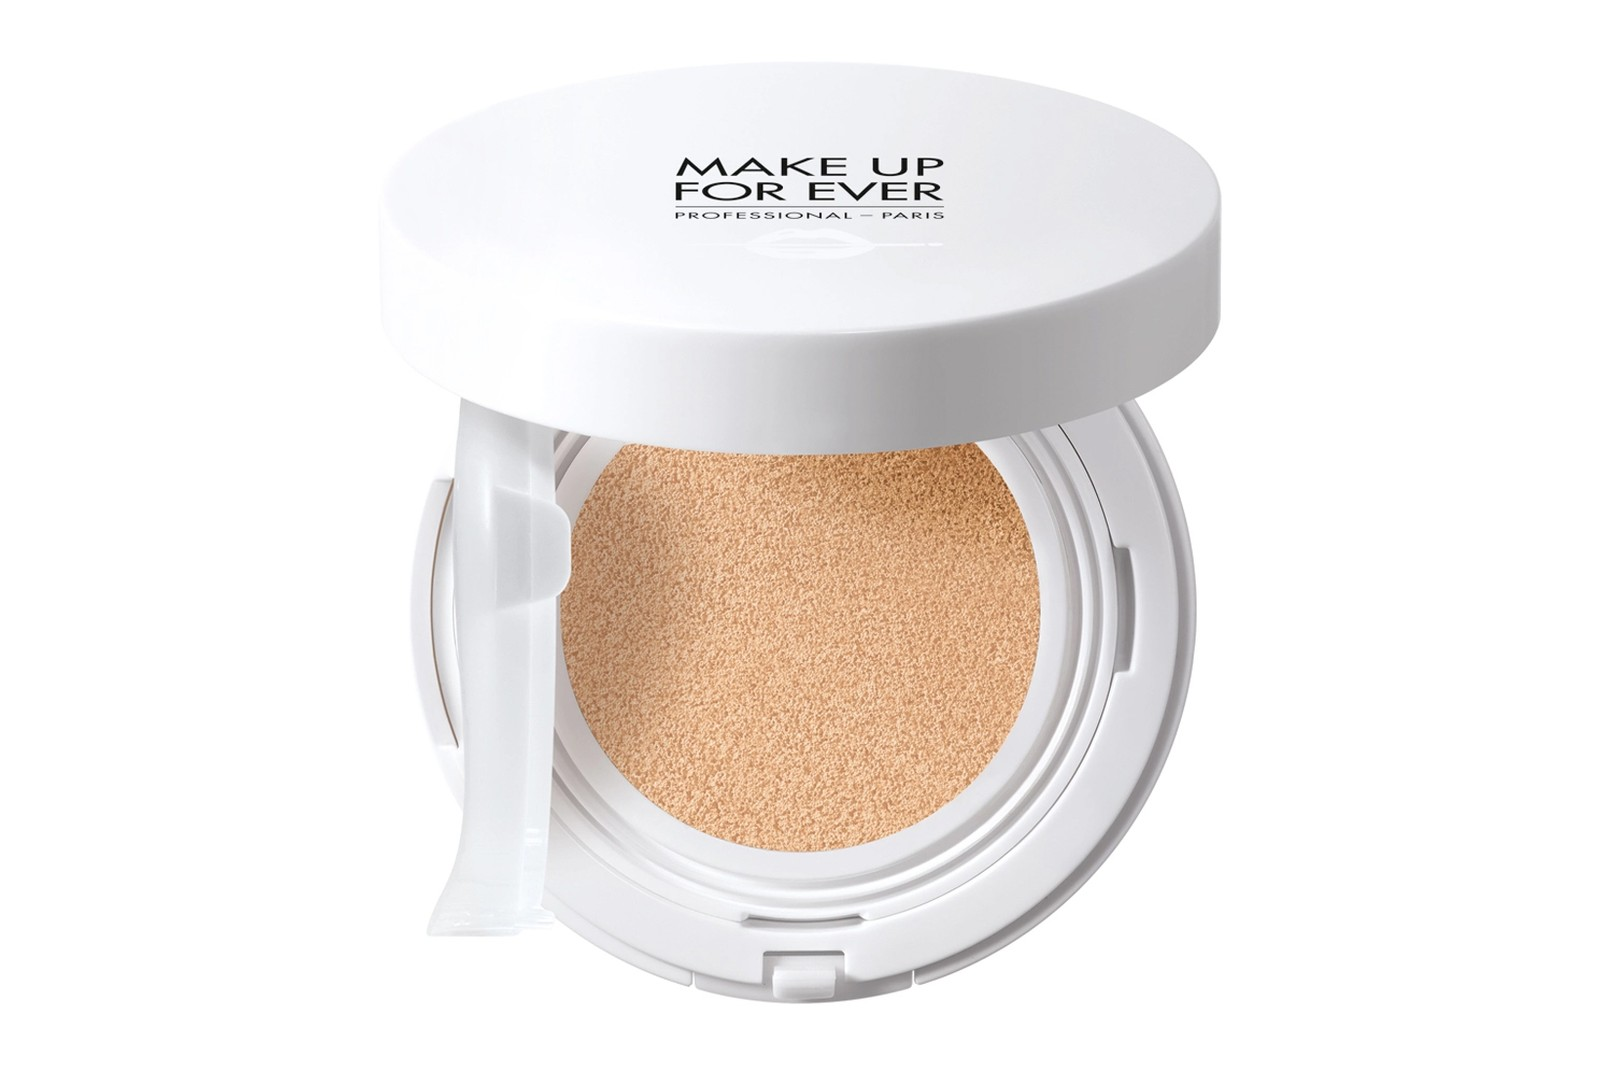 Dior Makeup Forever Couture Perfect Cushion Diormania Edition Oblique Foundation